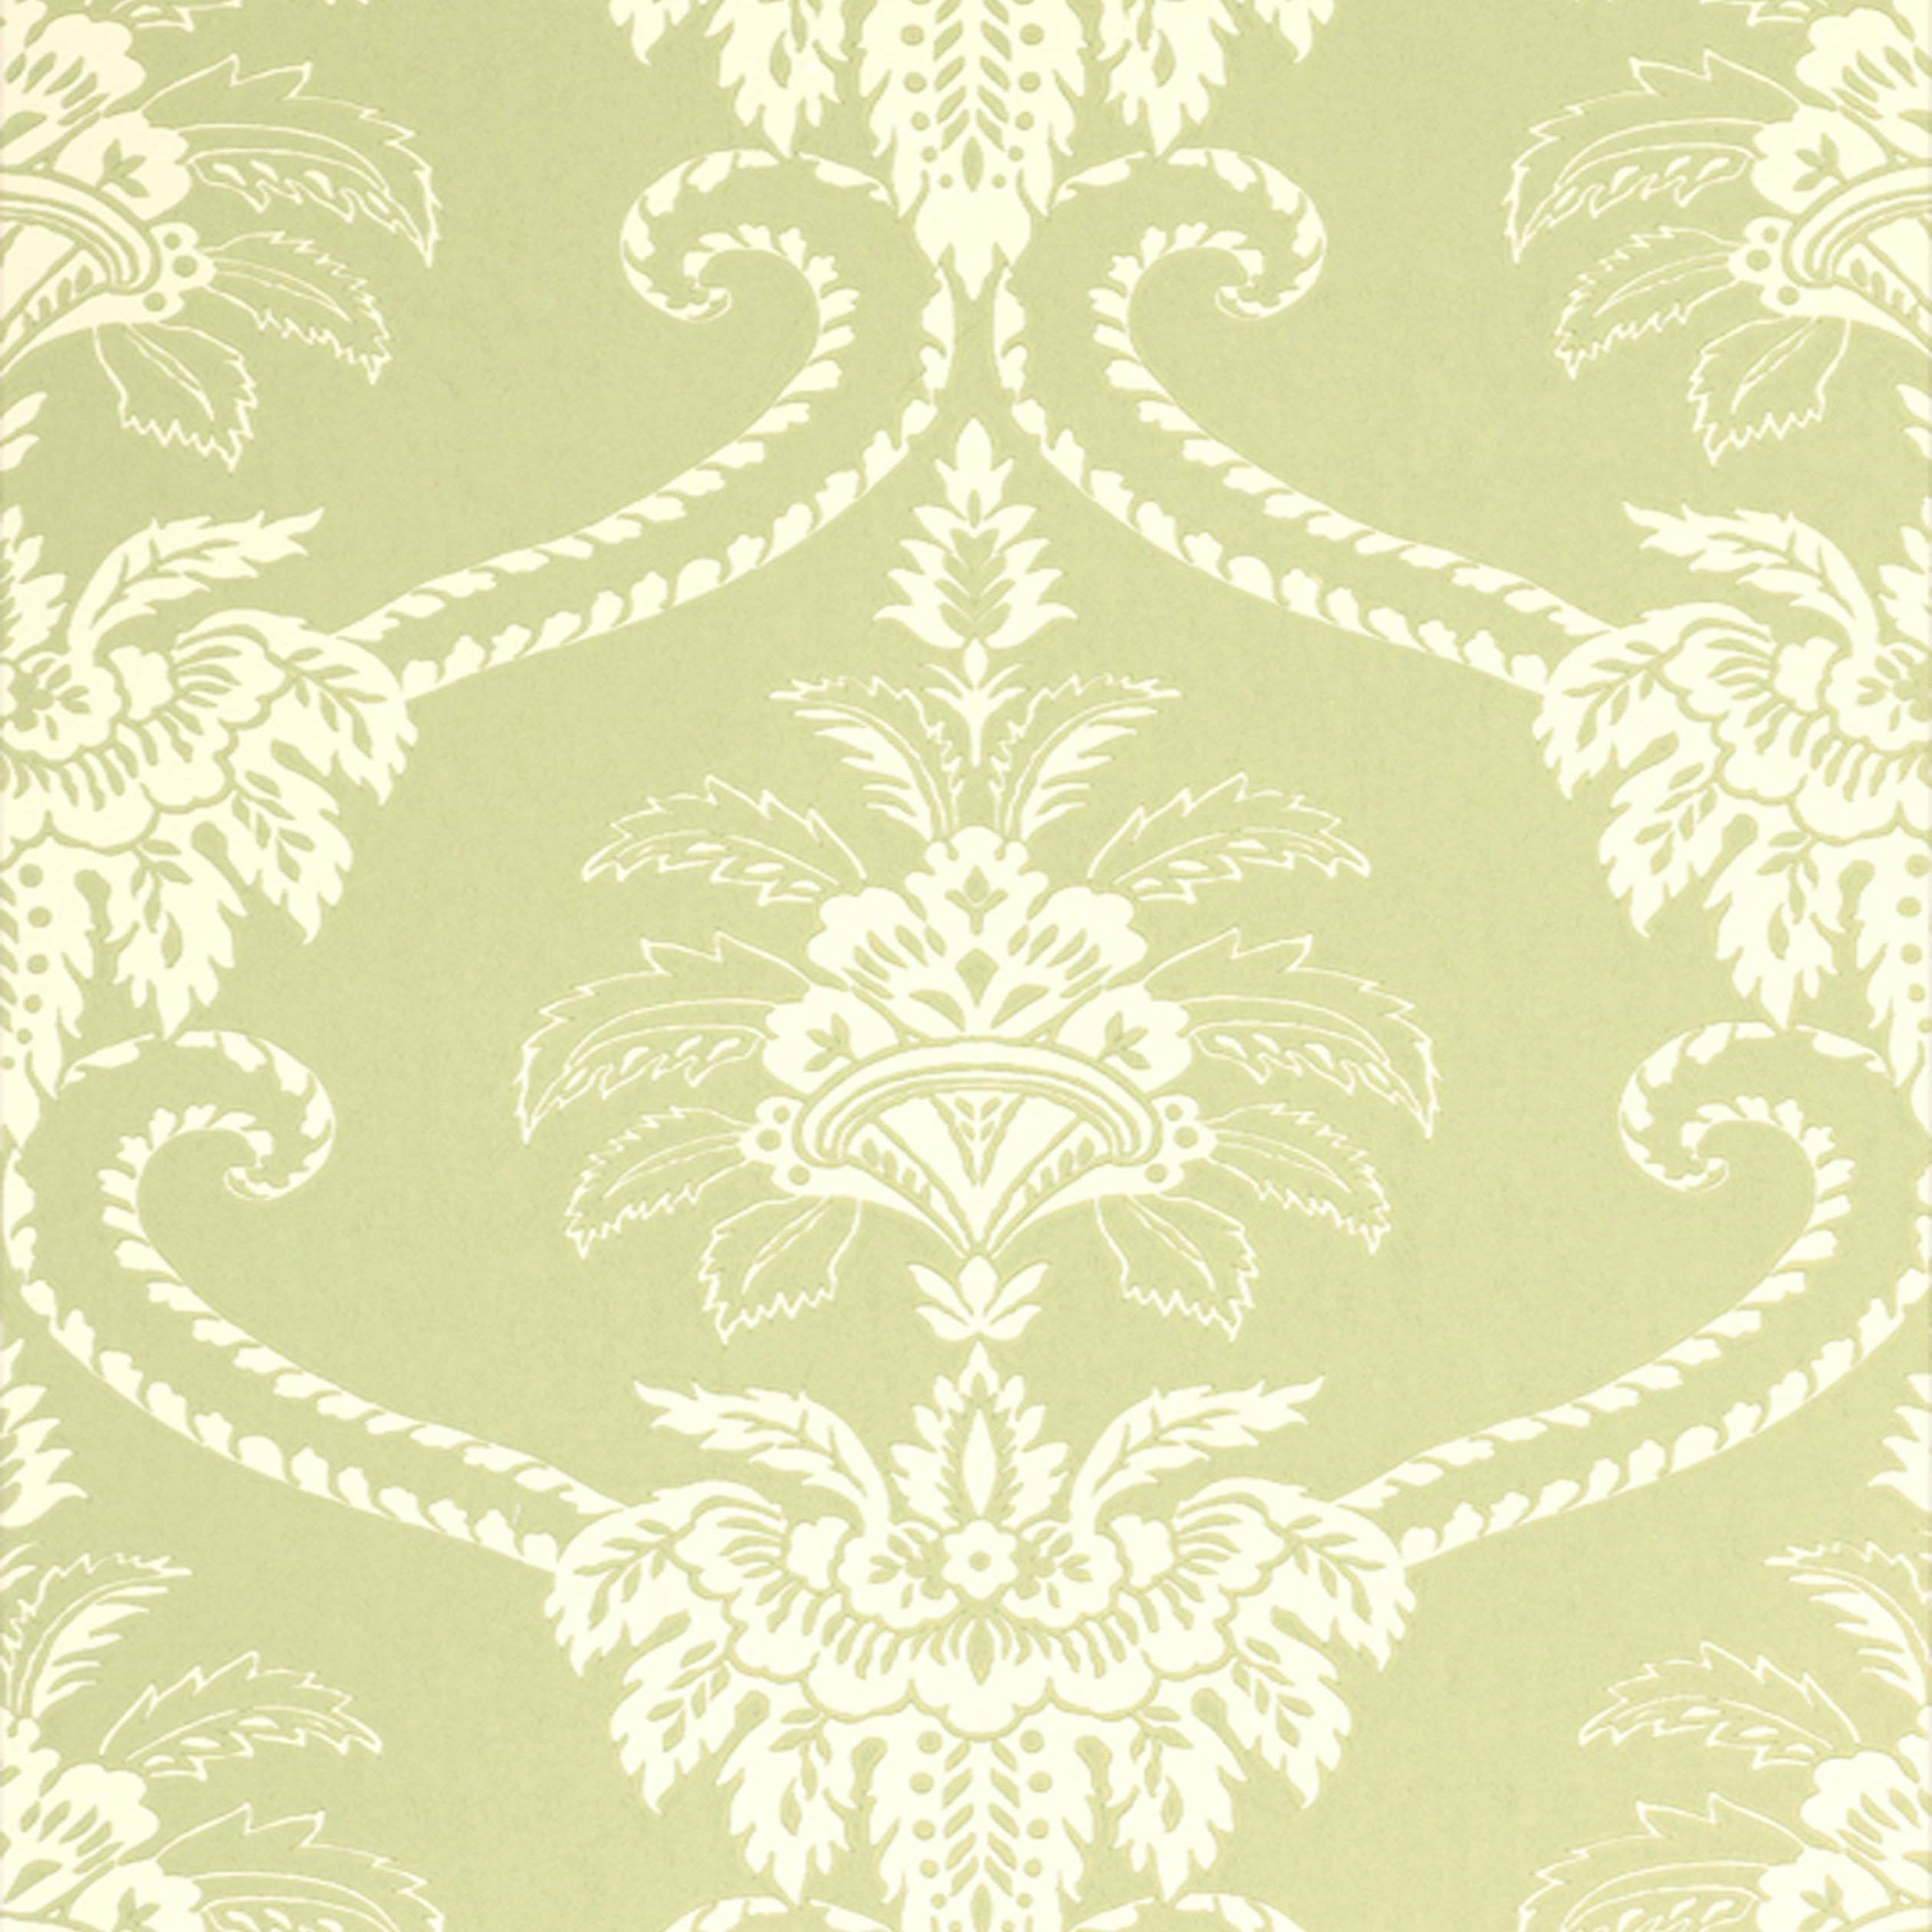 Damask Olive Green and Cream AT WP010 Pinterest